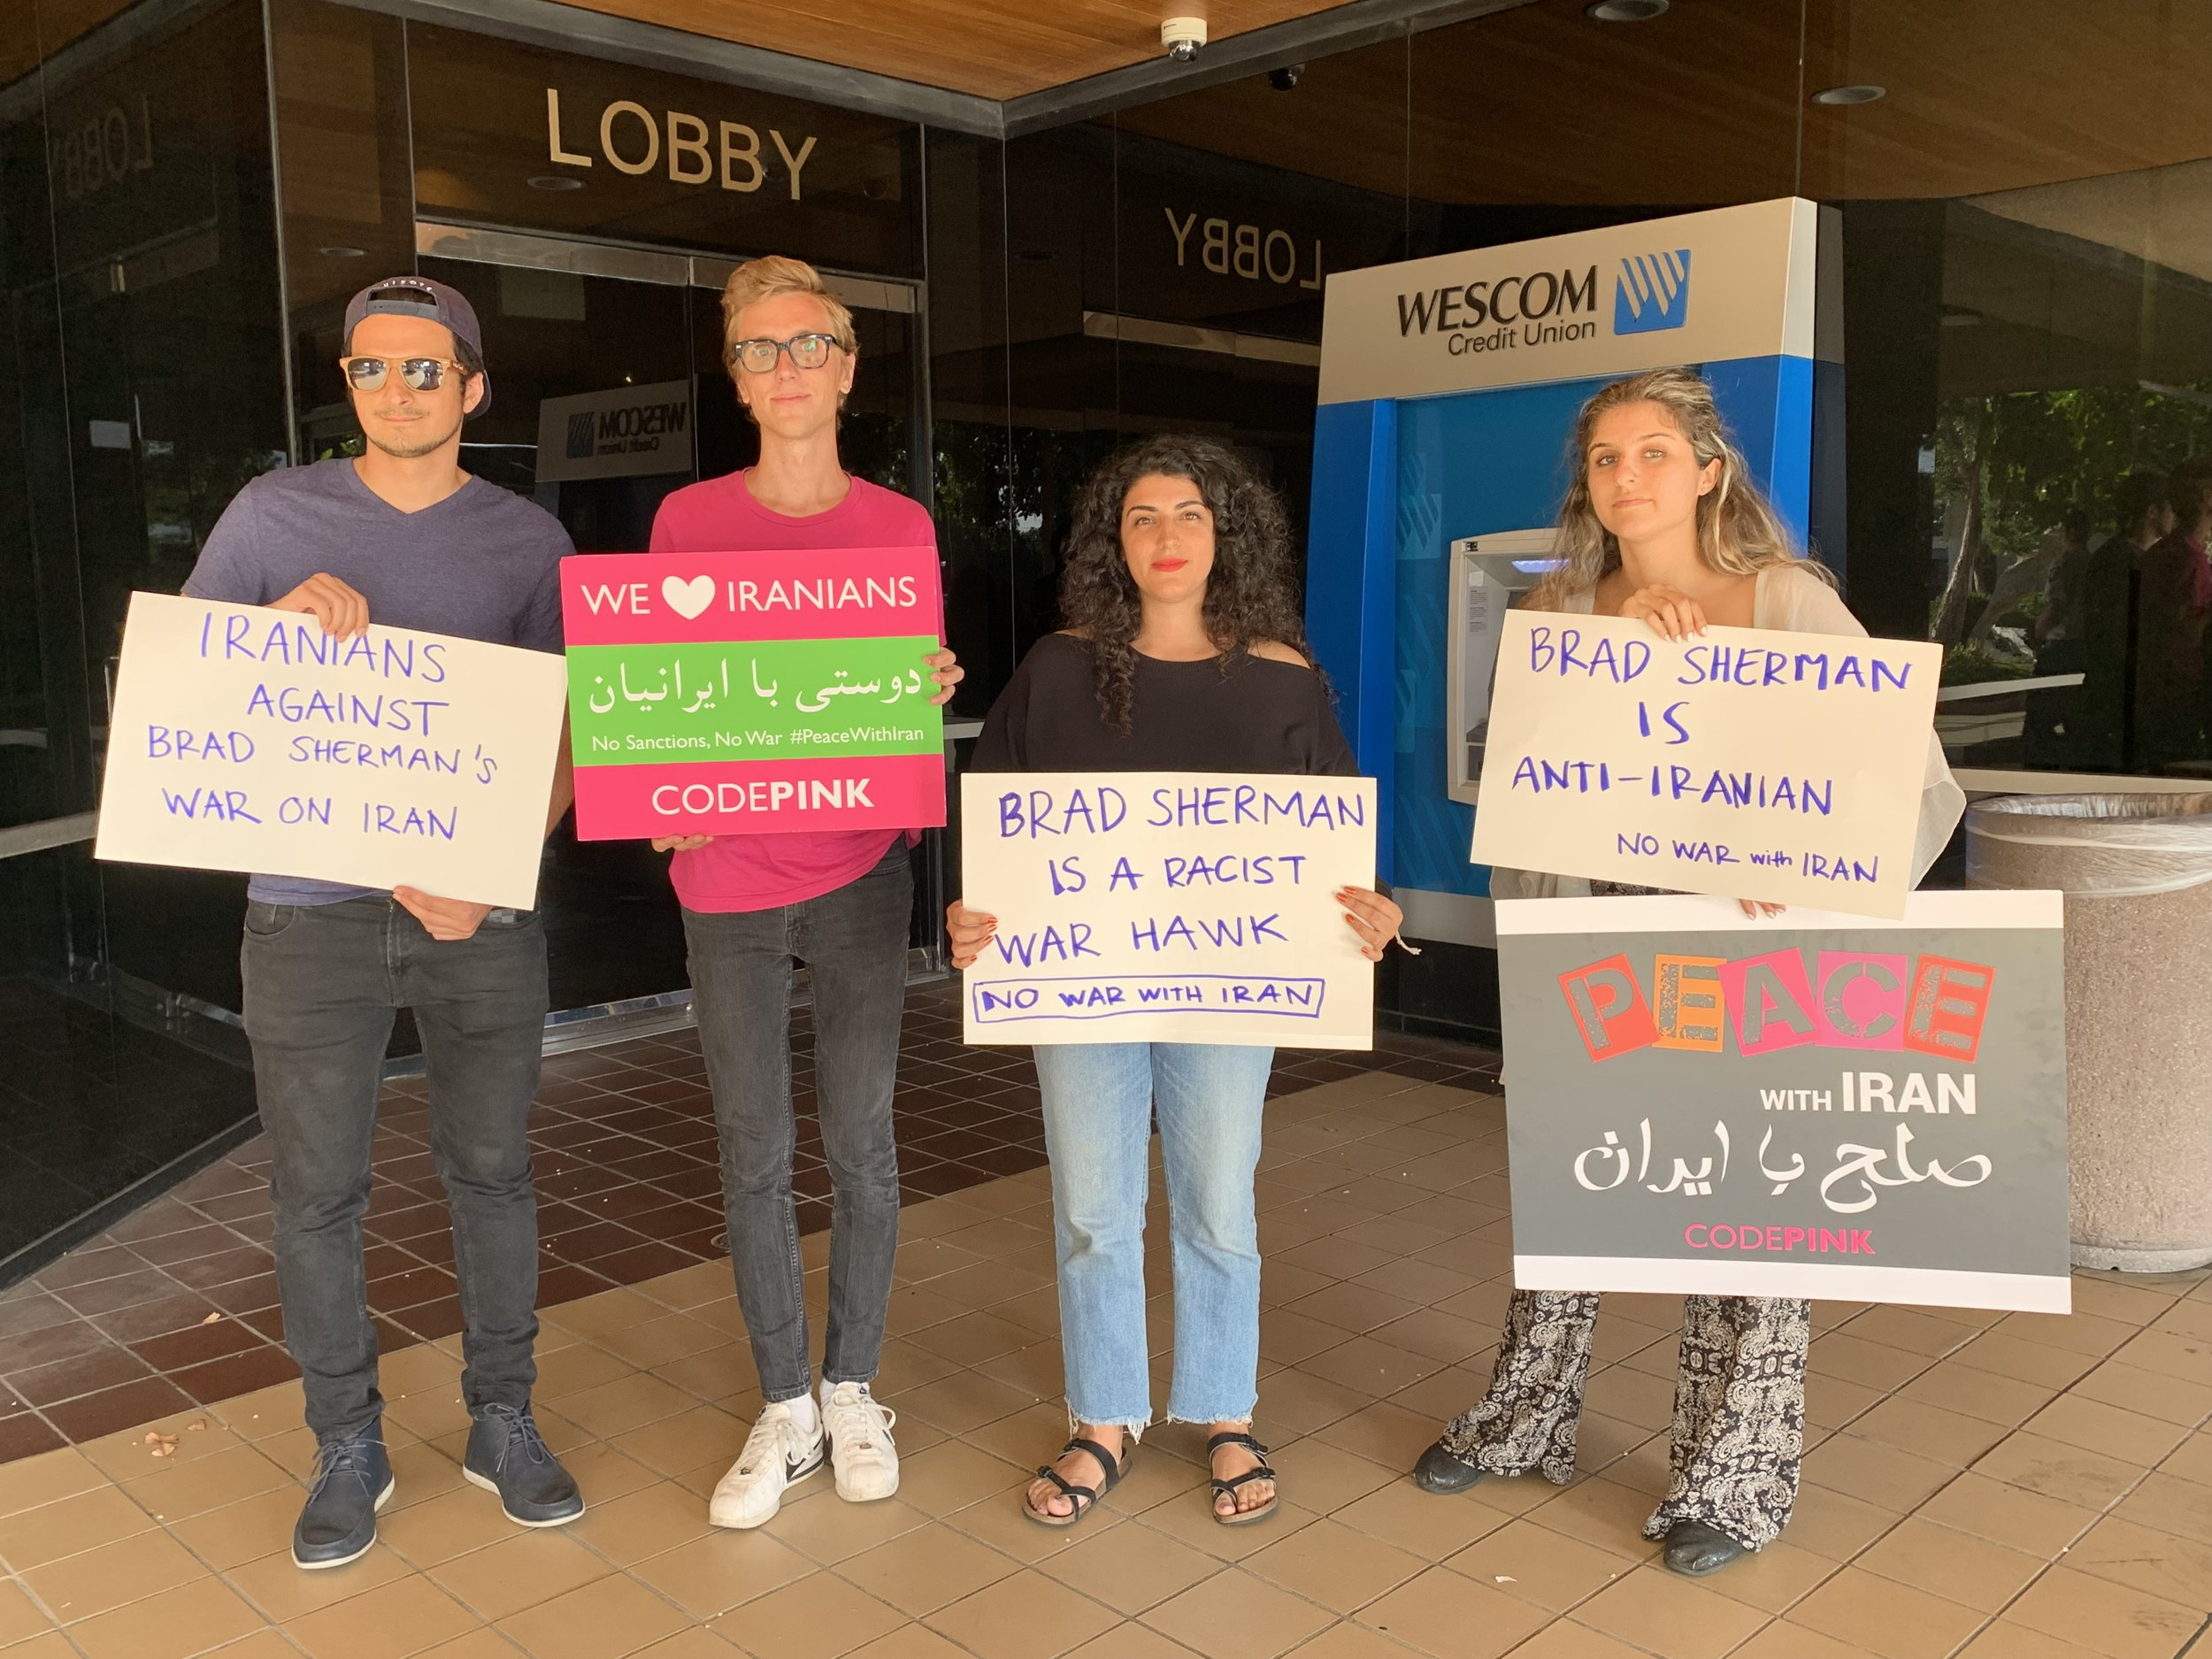 Outside Congressman Brad Sherman's office in Sherman Oaks, CA, community members shut down his office in protest of Sherman calling for violence against Iranians.